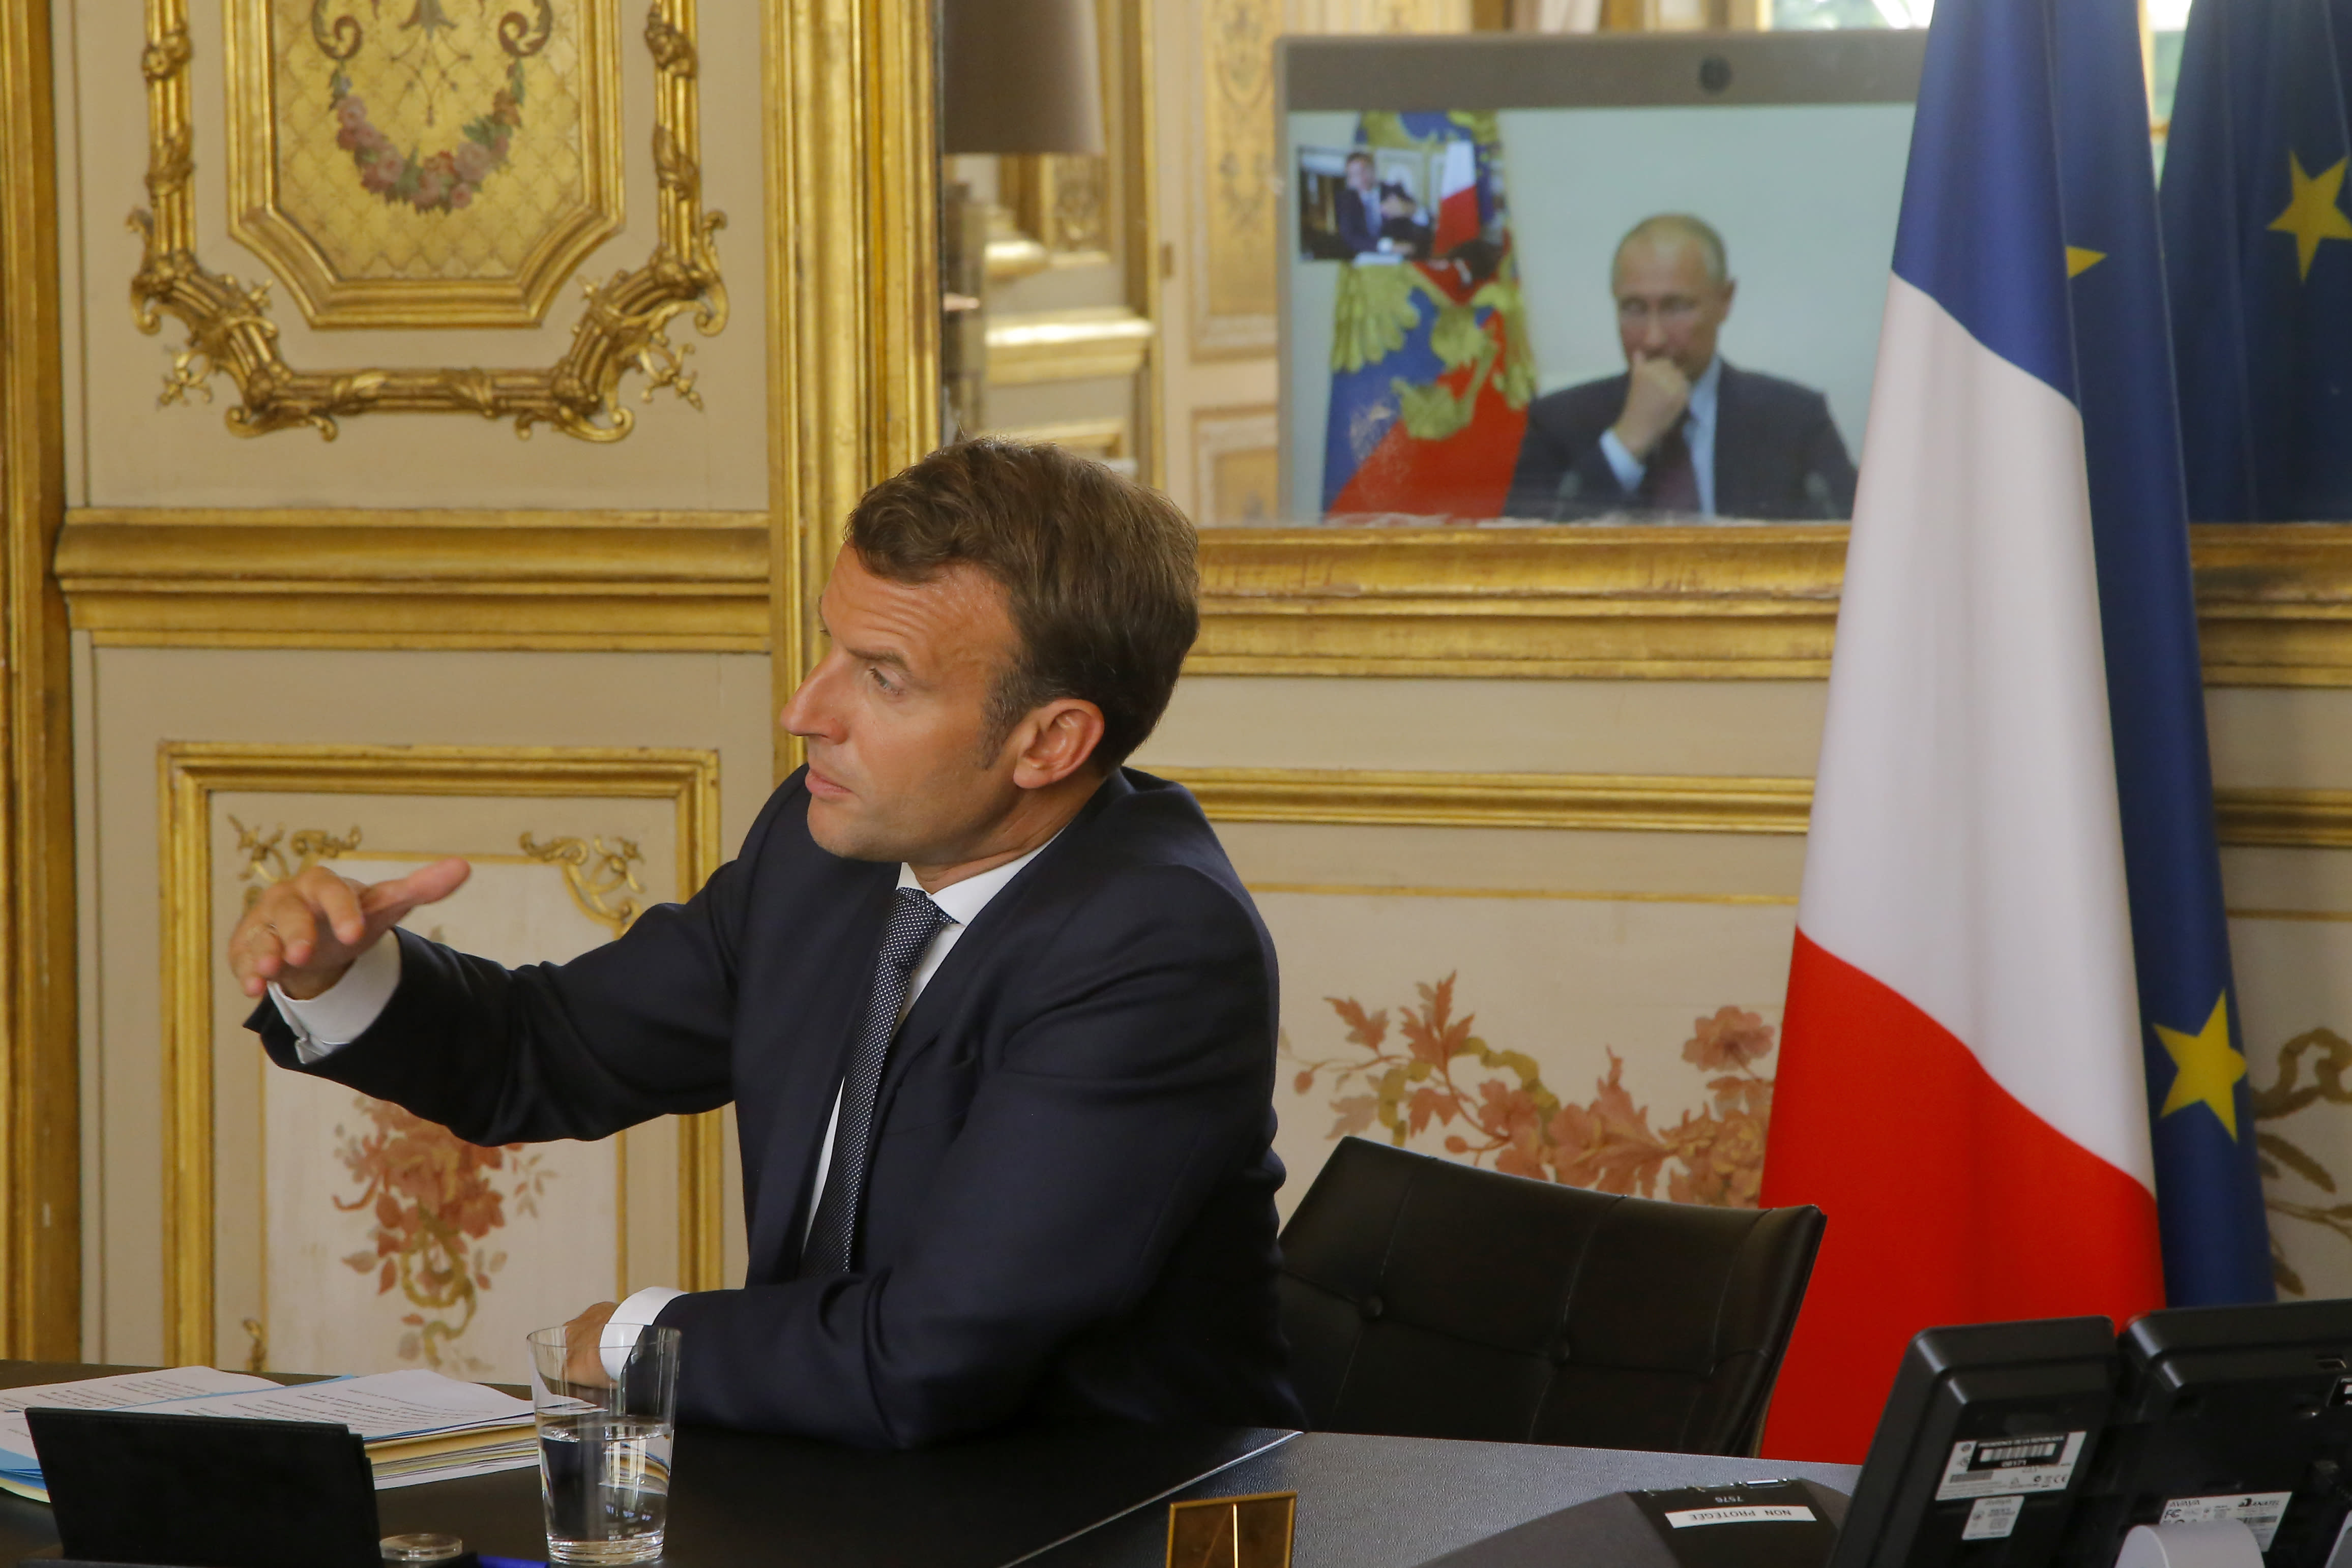 French President Emmanuel Macron talks to Russian President Vladimir Putin during a video conference Friday, June 26, 2020 at the Elysee Palace in Paris. Russian President Vladimir Putin holds video talks with French President Emmanuel Macron about the virus, Libya, Syria and relations with the U.S. under Donald Trump. (AP Photo/Michel Euler, Pool)